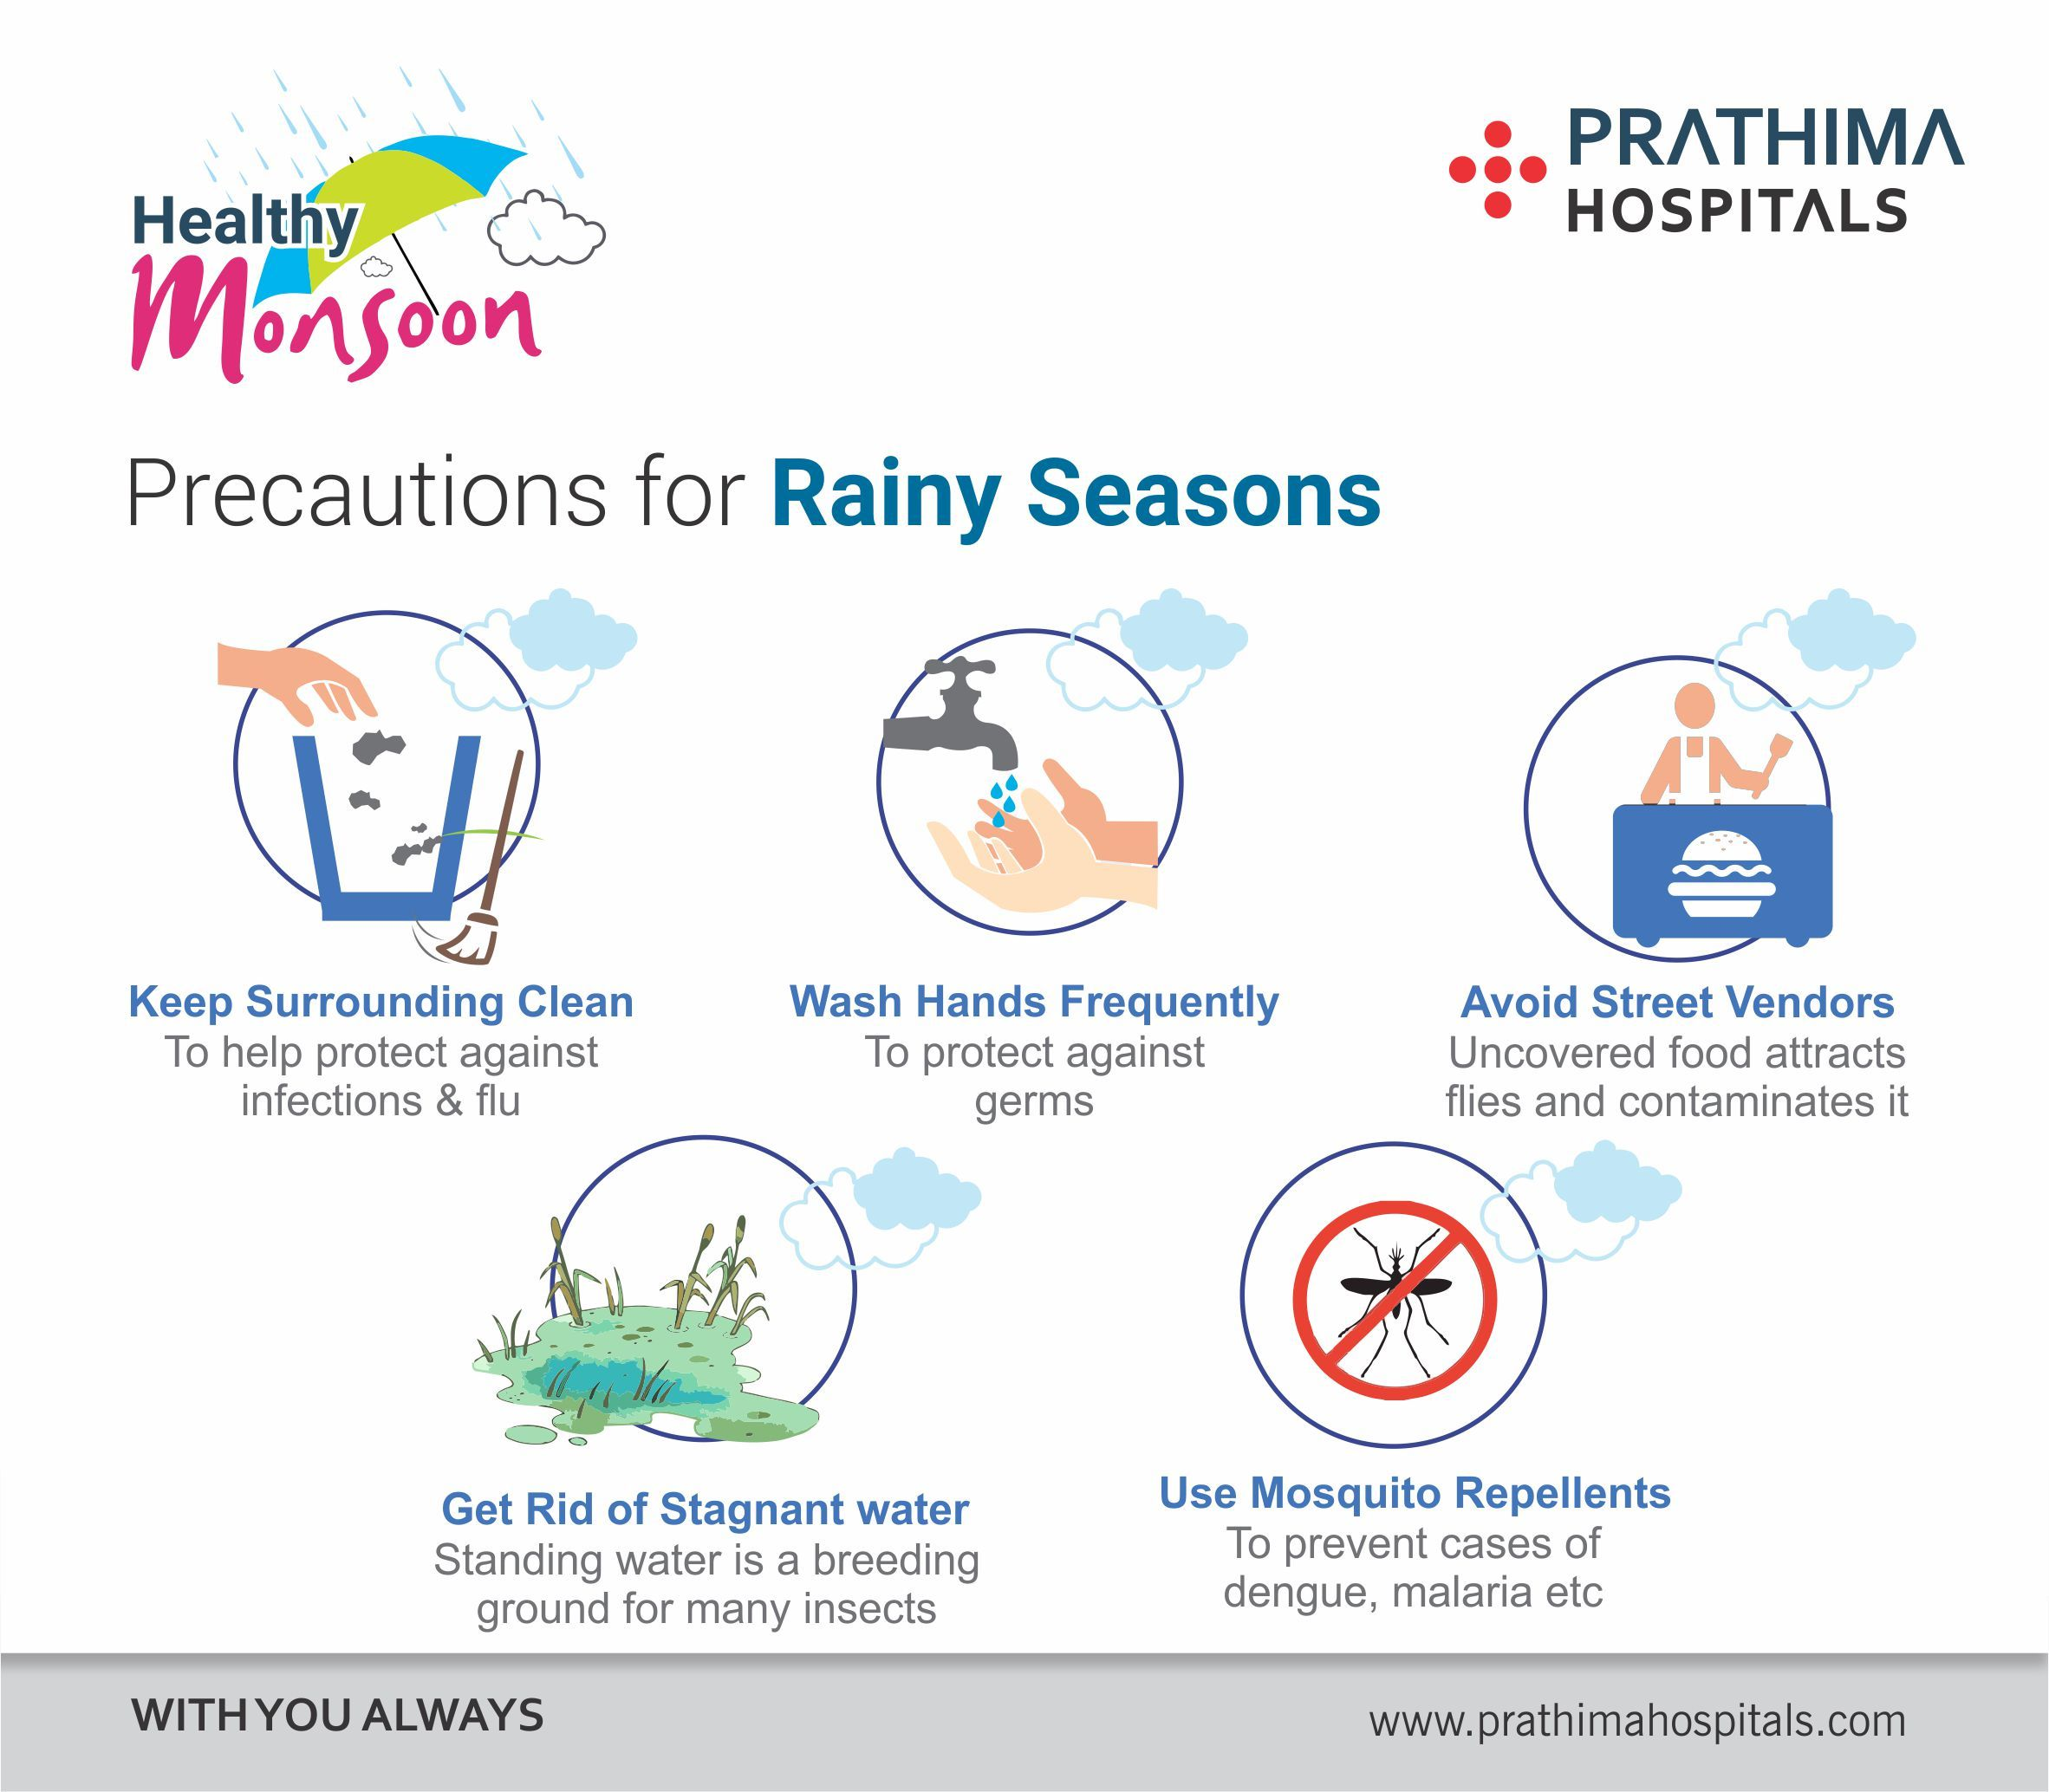 Healthymonsoon Avoid Getting Sick During Rainy Season Have A